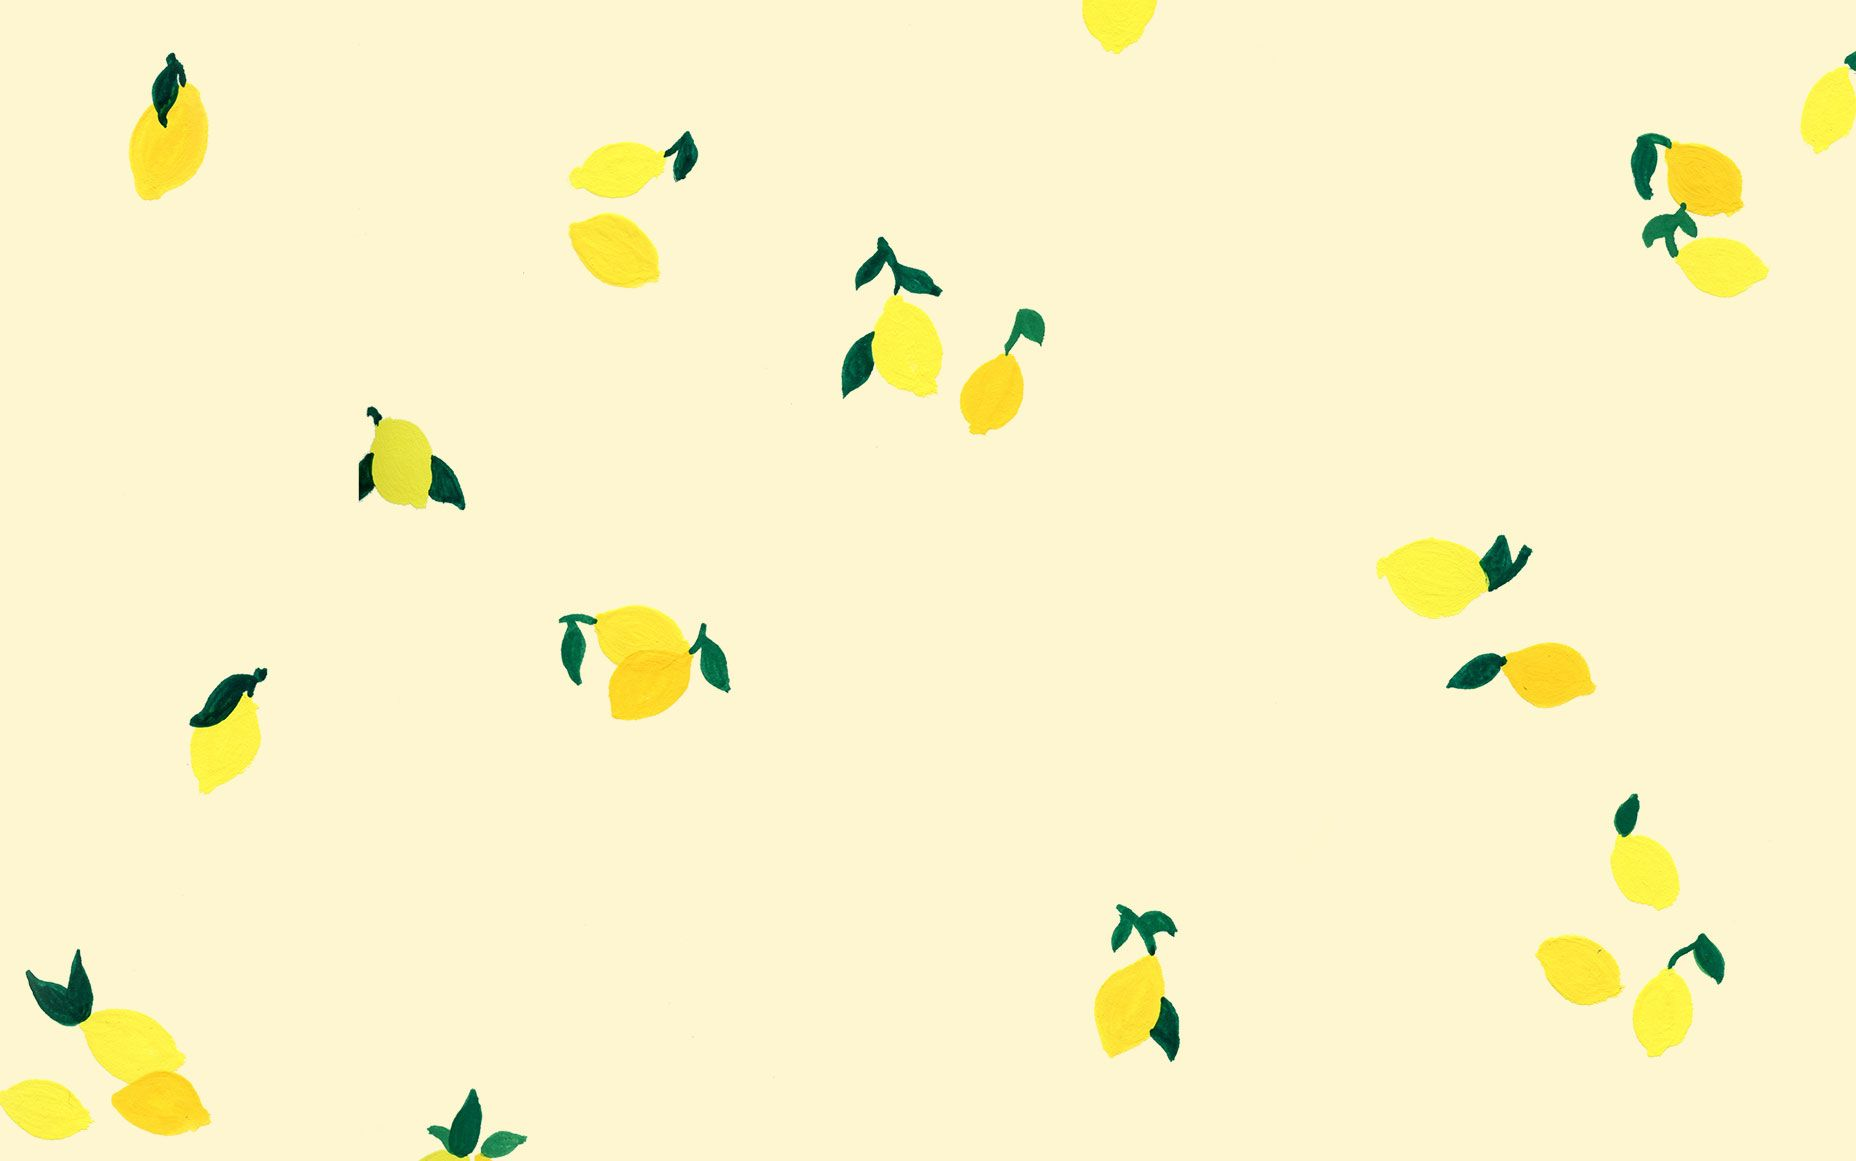 Elliedeneroff Dressyourtech Lemons Jpg 1856 1161 Cute Desktop Wallpaper Desktop Wallpaper Art Aesthetic Desktop Wallpaper